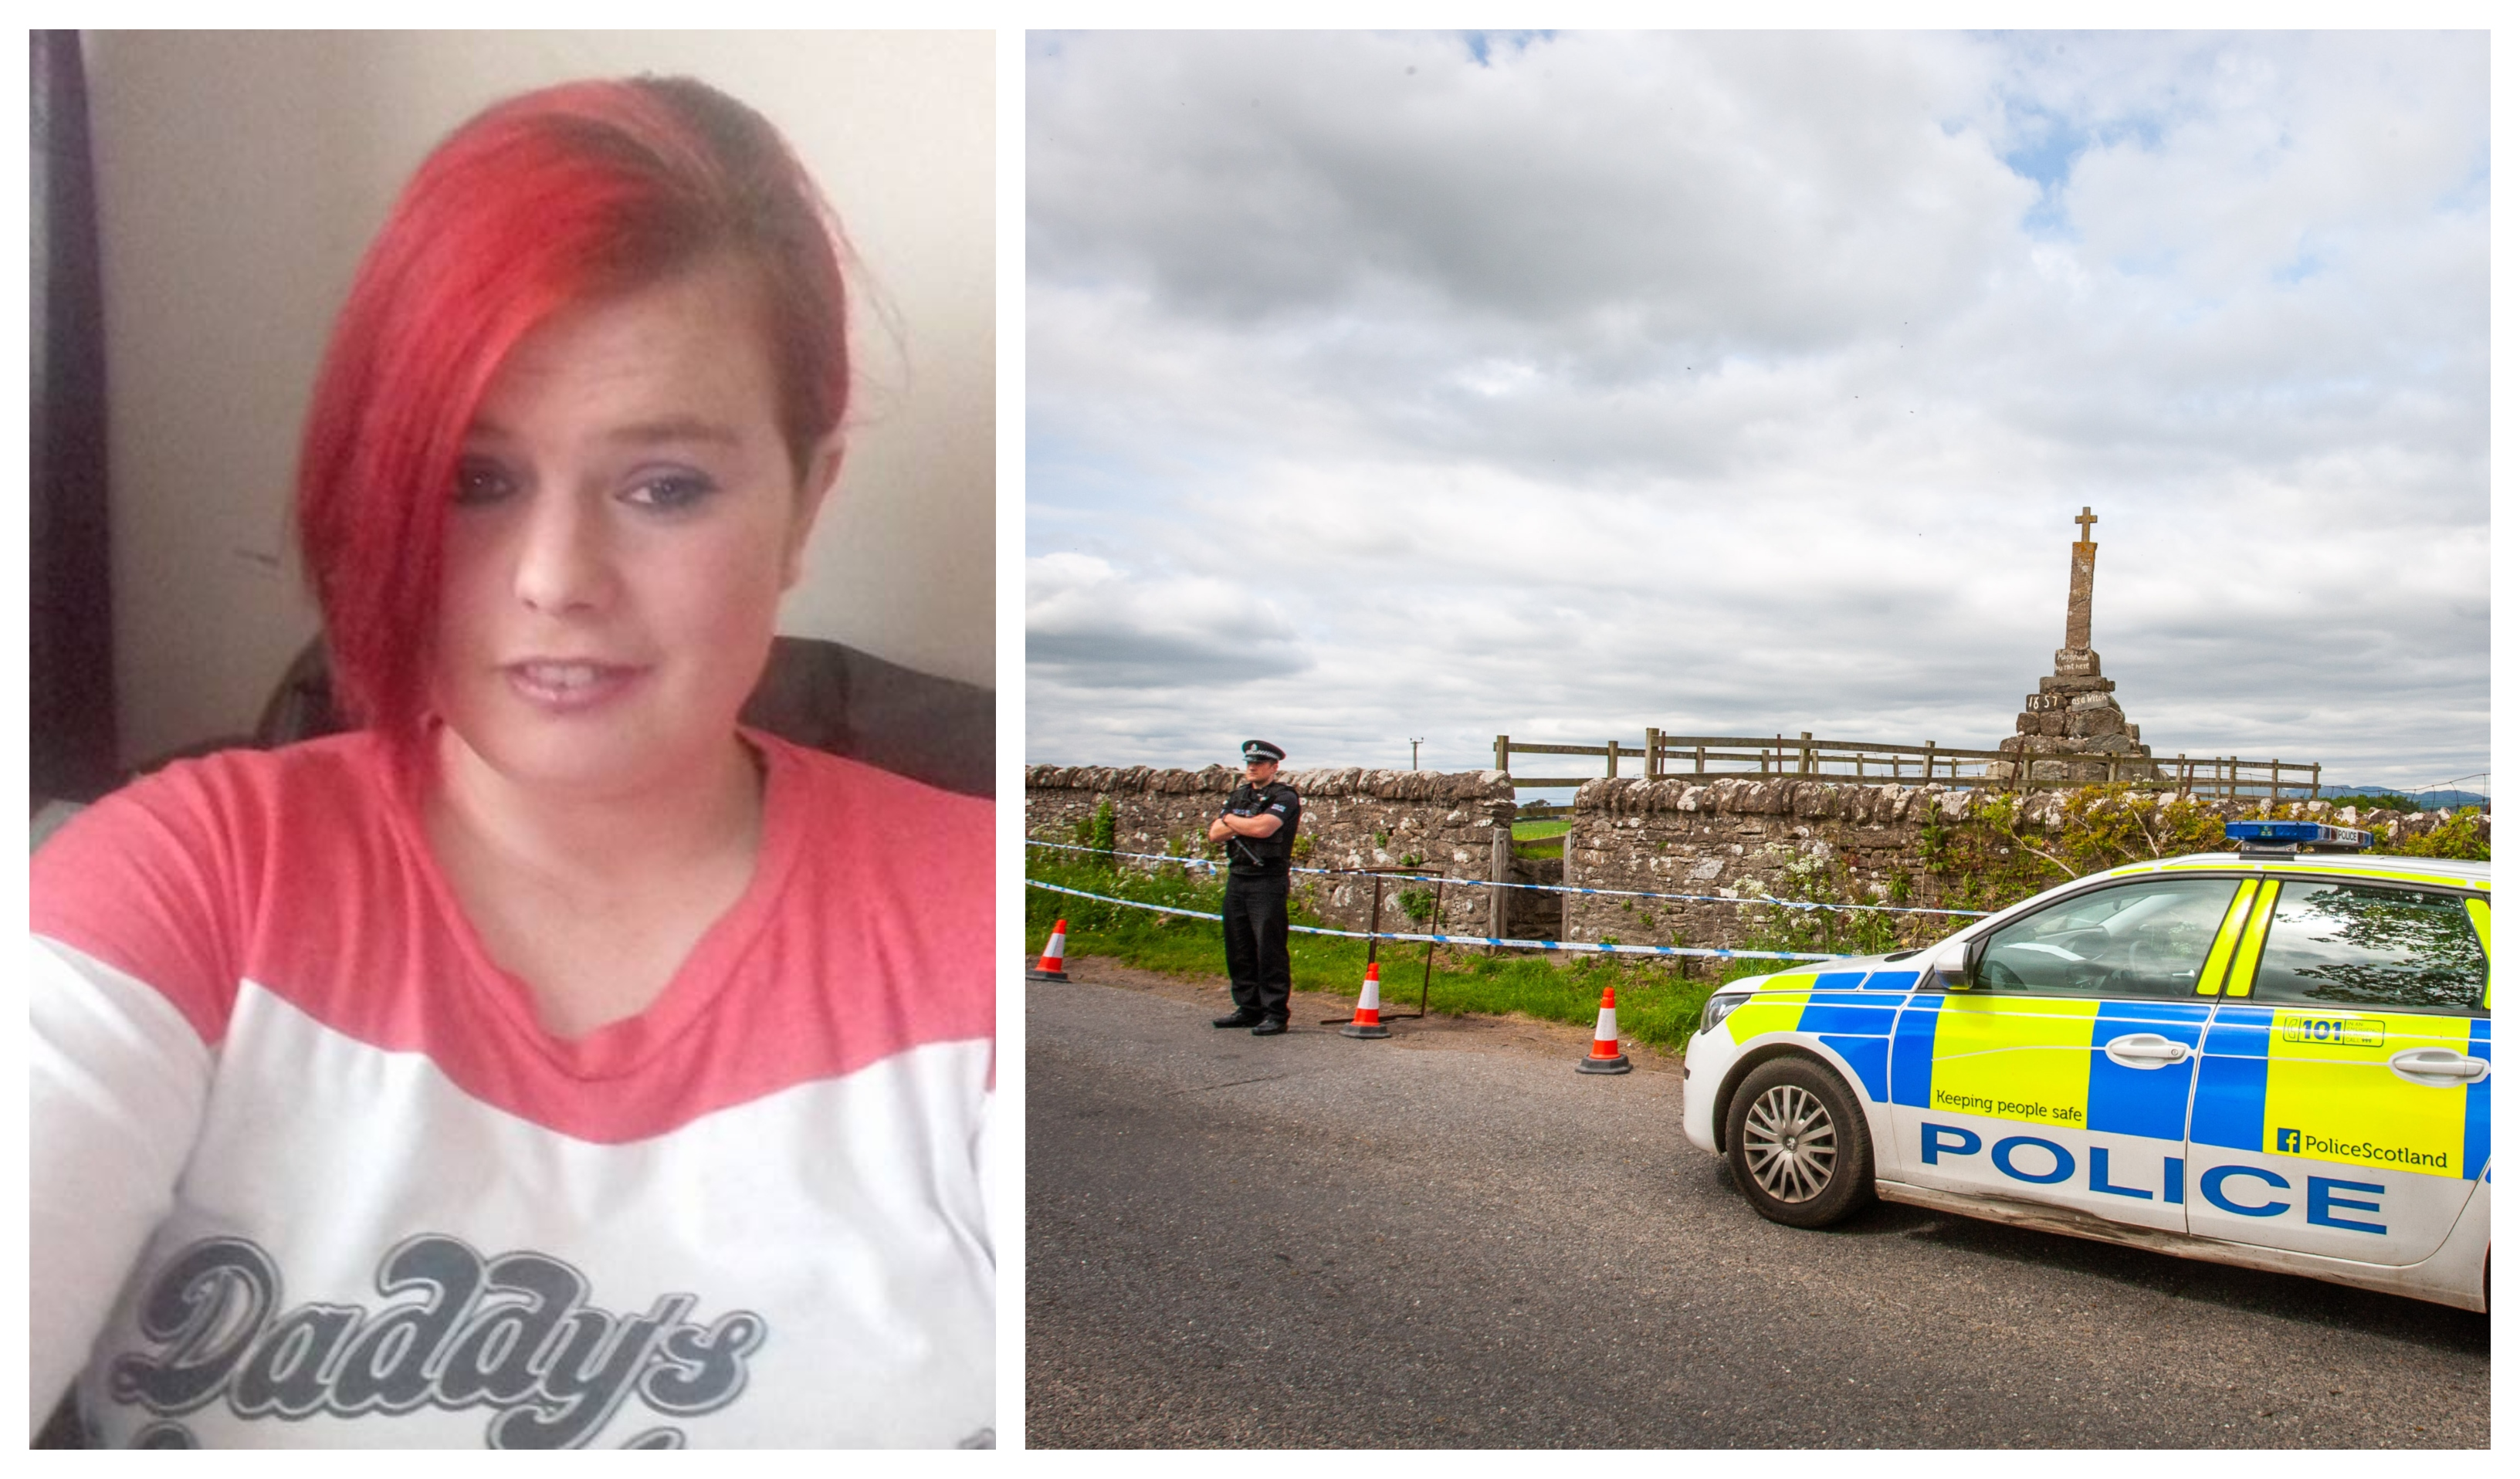 Annalise Johnstone, left, and police search alongside Maggie Wall Memorial, right.